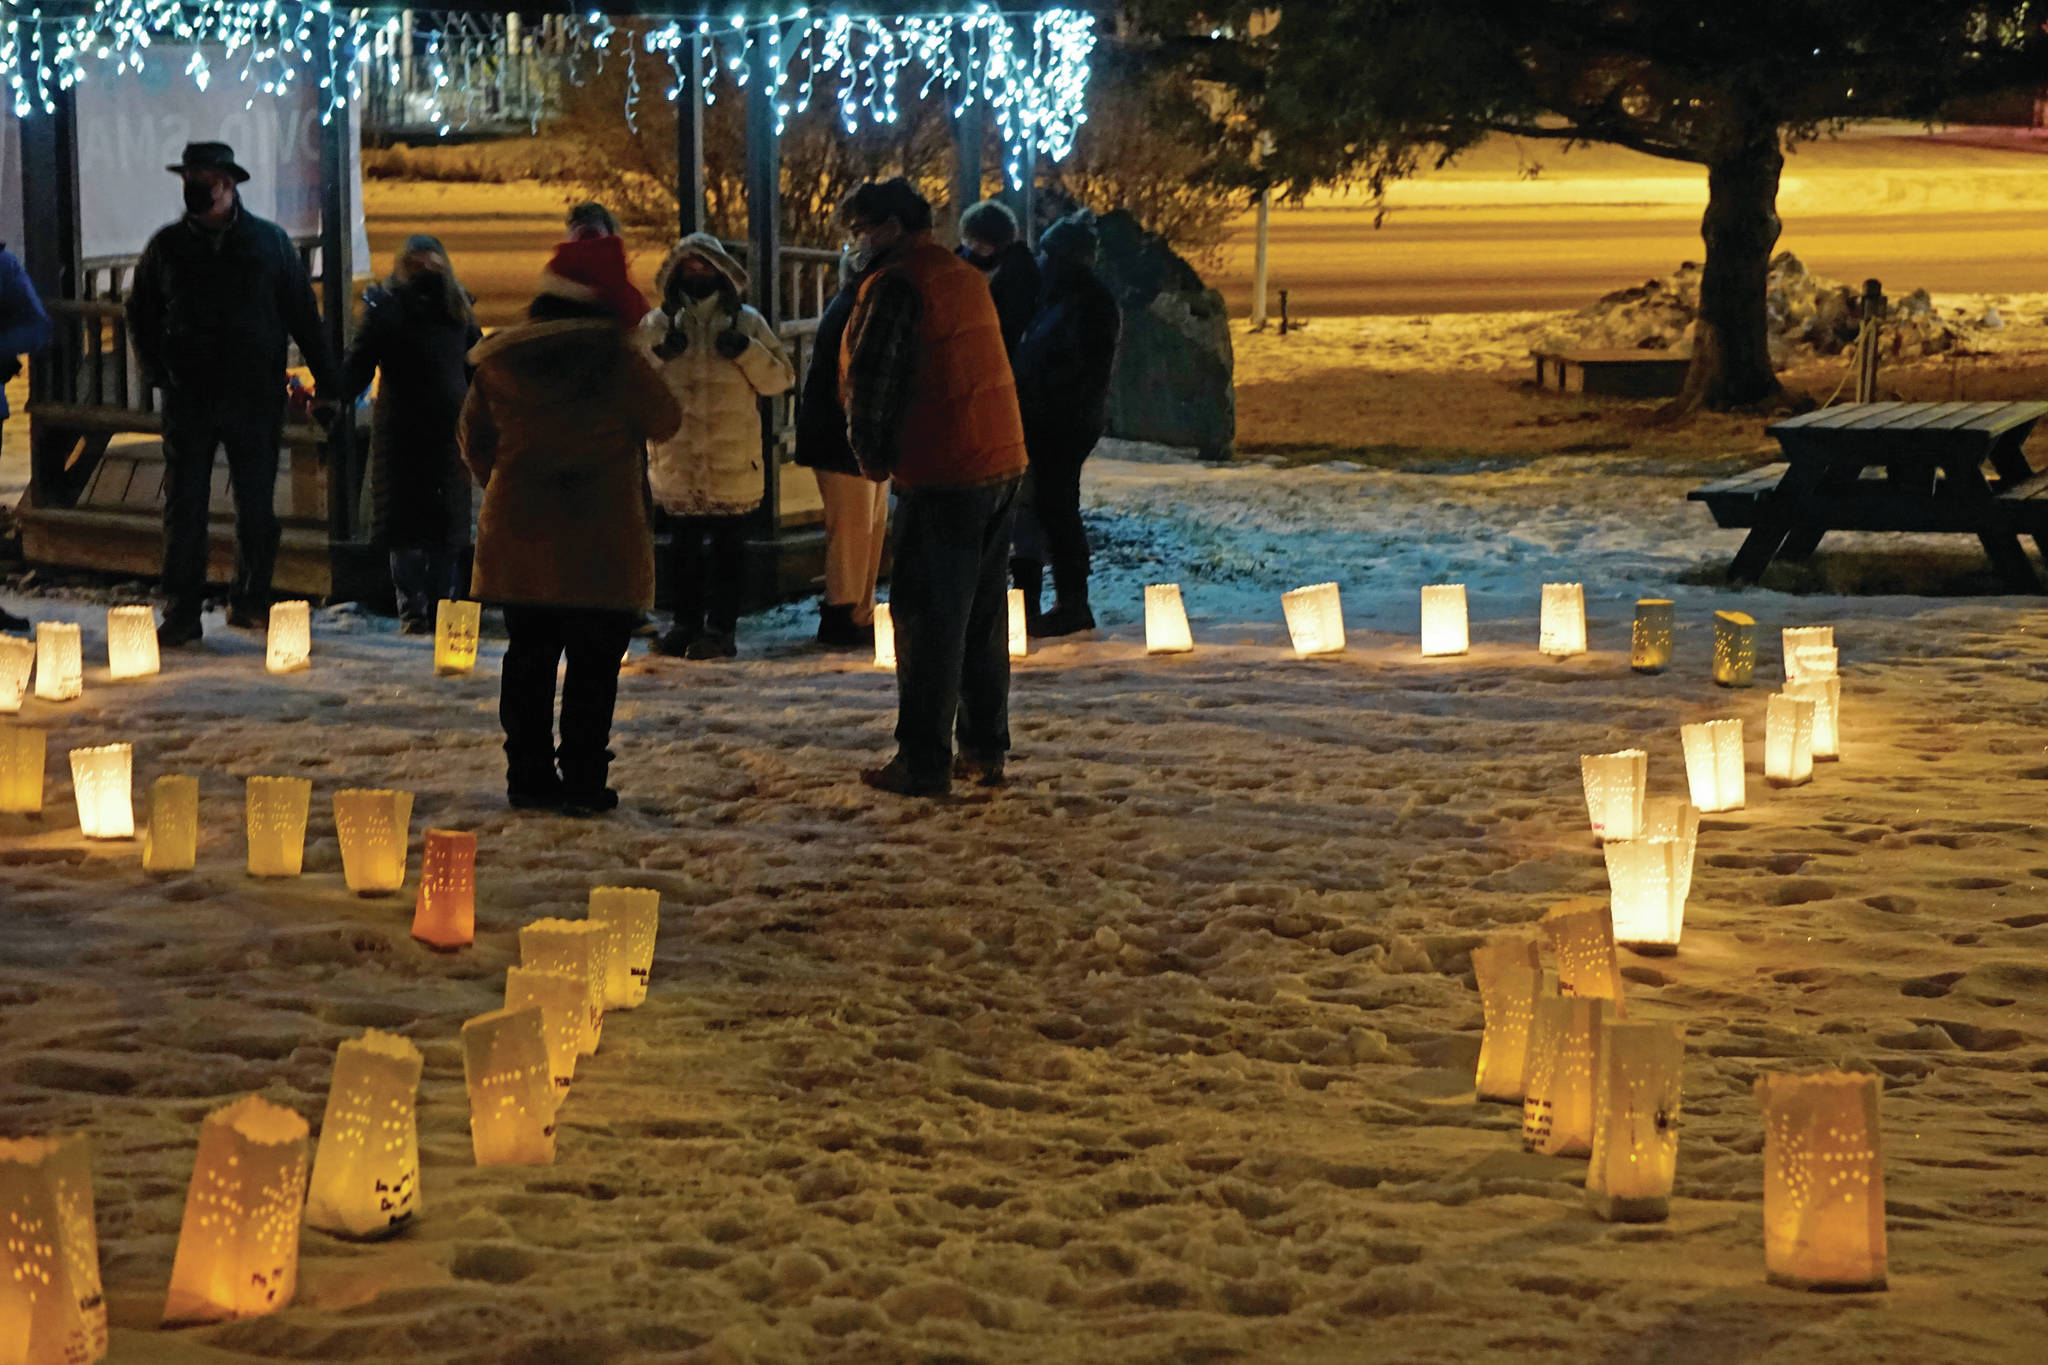 """Memorial luminarias provide a somber light at Hospice of Homer's """"Light Up a Life"""" and 35th Anniversary Gathering last Friday, Dec. 18, 2020, at WKFL Park in Homer, Alaska. The event honored staff and volunteers who have helped out at the organization over the decades. As a fundraiser for hospice, people purchased luminarias to honor deceased friends and family. Luminarias are a Hispanic tradition where candles are placed in a paper bag weighed down with sand. Also known as farolitios, Catholics place luminarias to guide the spirit of the Christ child to one's home. (Photo by Michael Armstrong/Homer News)"""